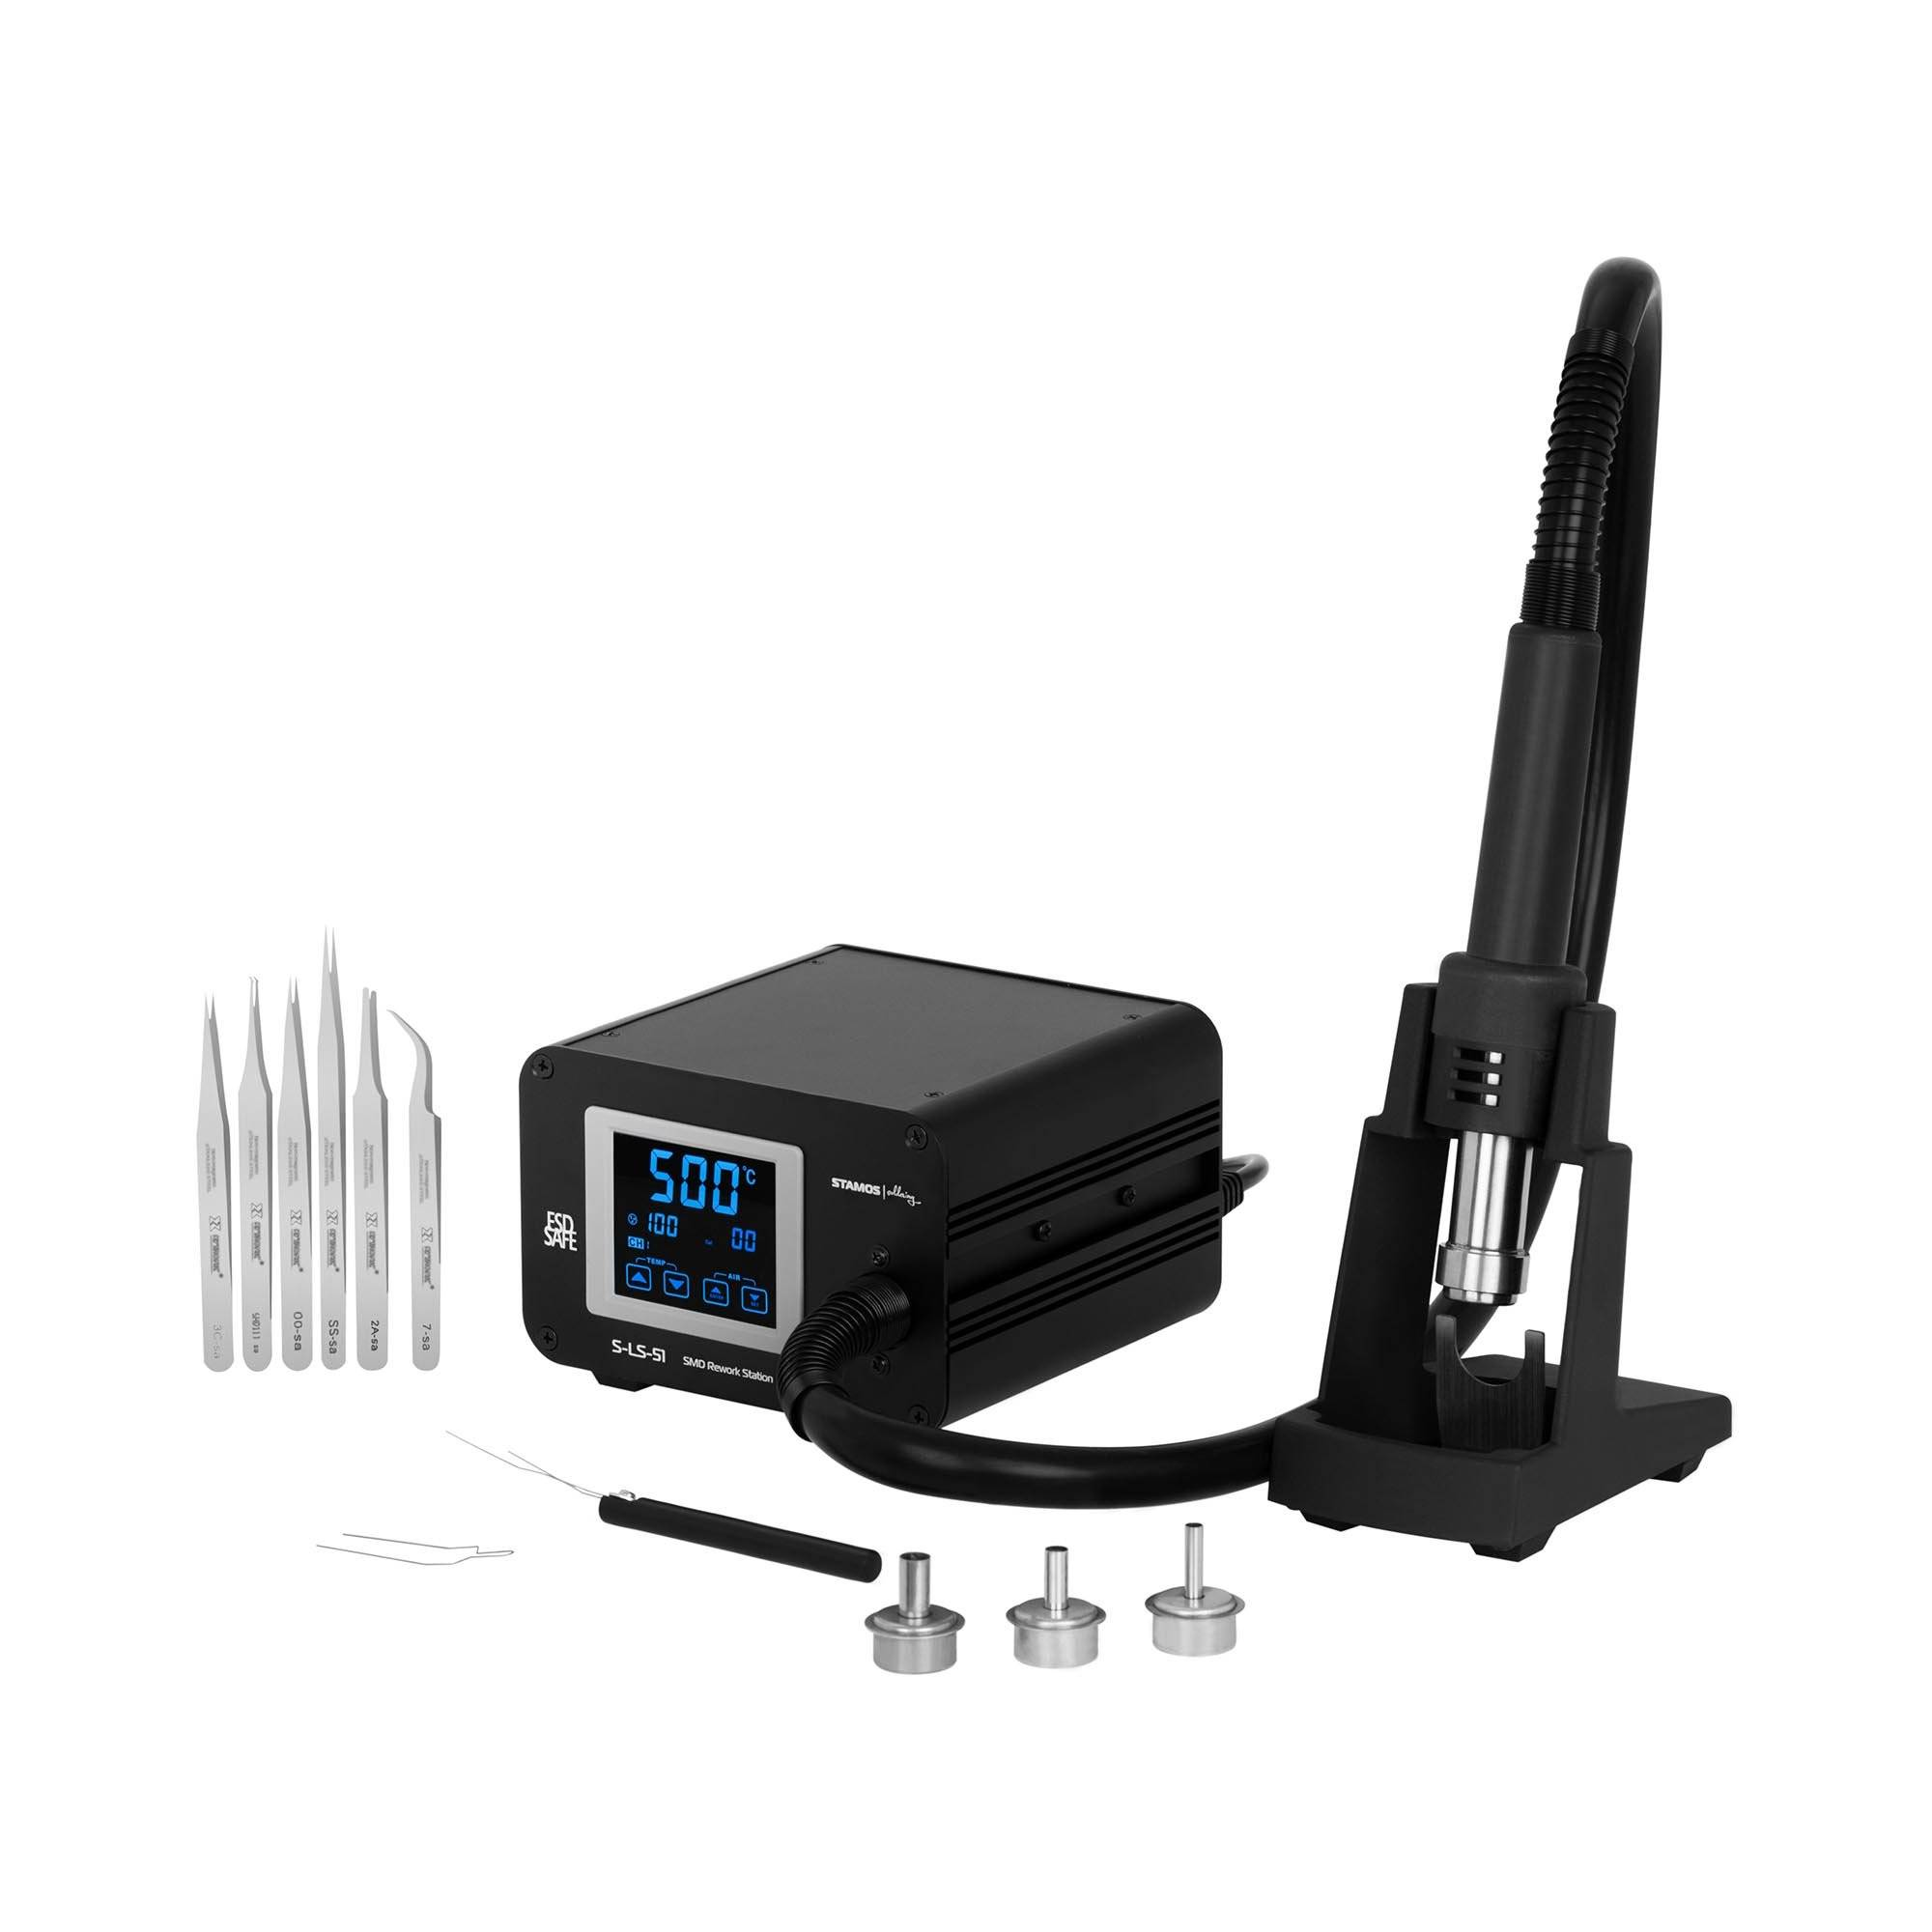 Stamos Soldering Hot Air Rework Station with Hot Air Gun - LCD touch display